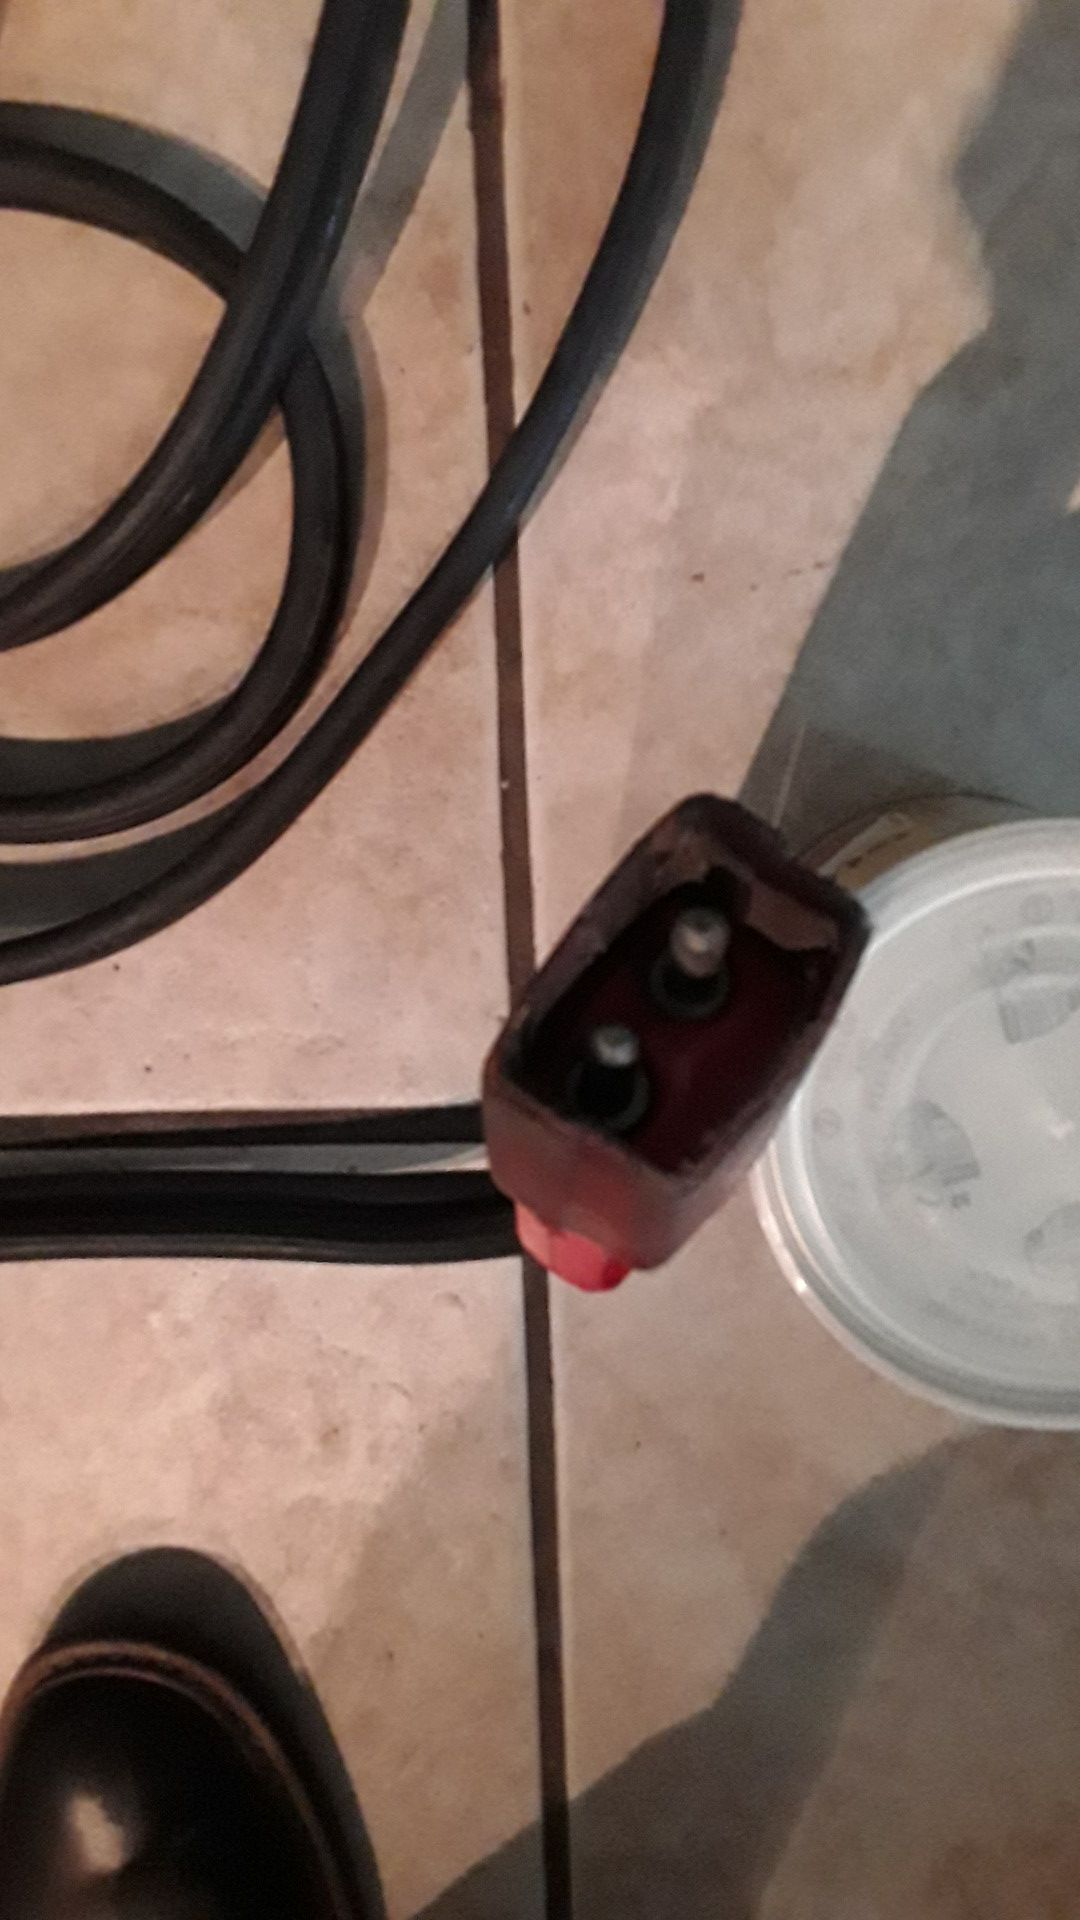 Jumping cables